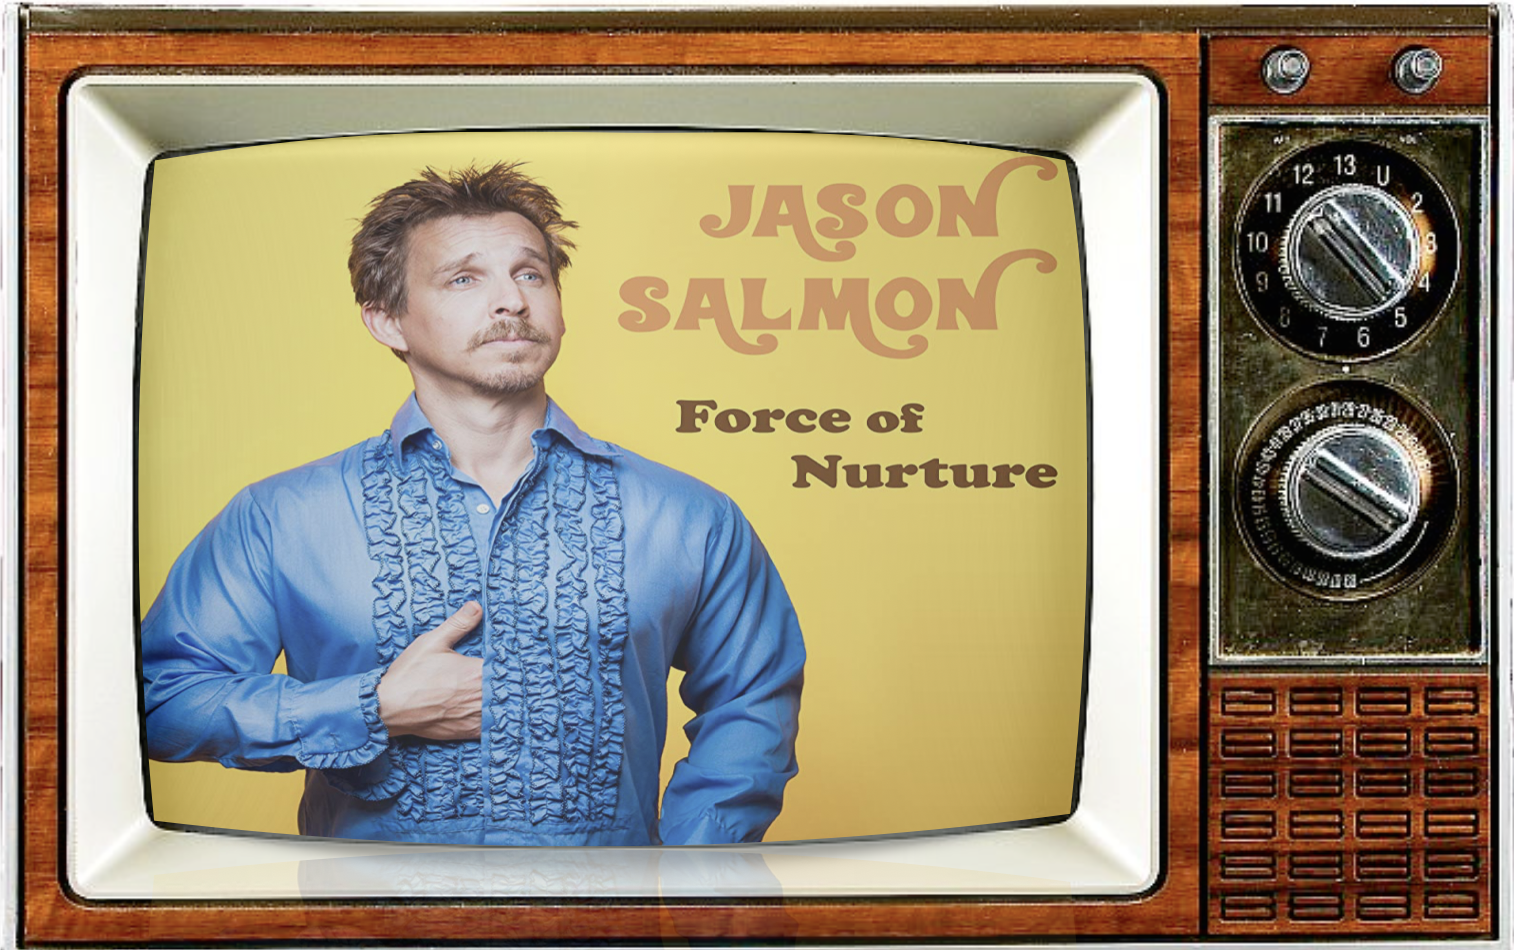 SMC Episode 73: Comedy, It's No Laughing Matter – With (actually funny!) Comedian Jason Salmon